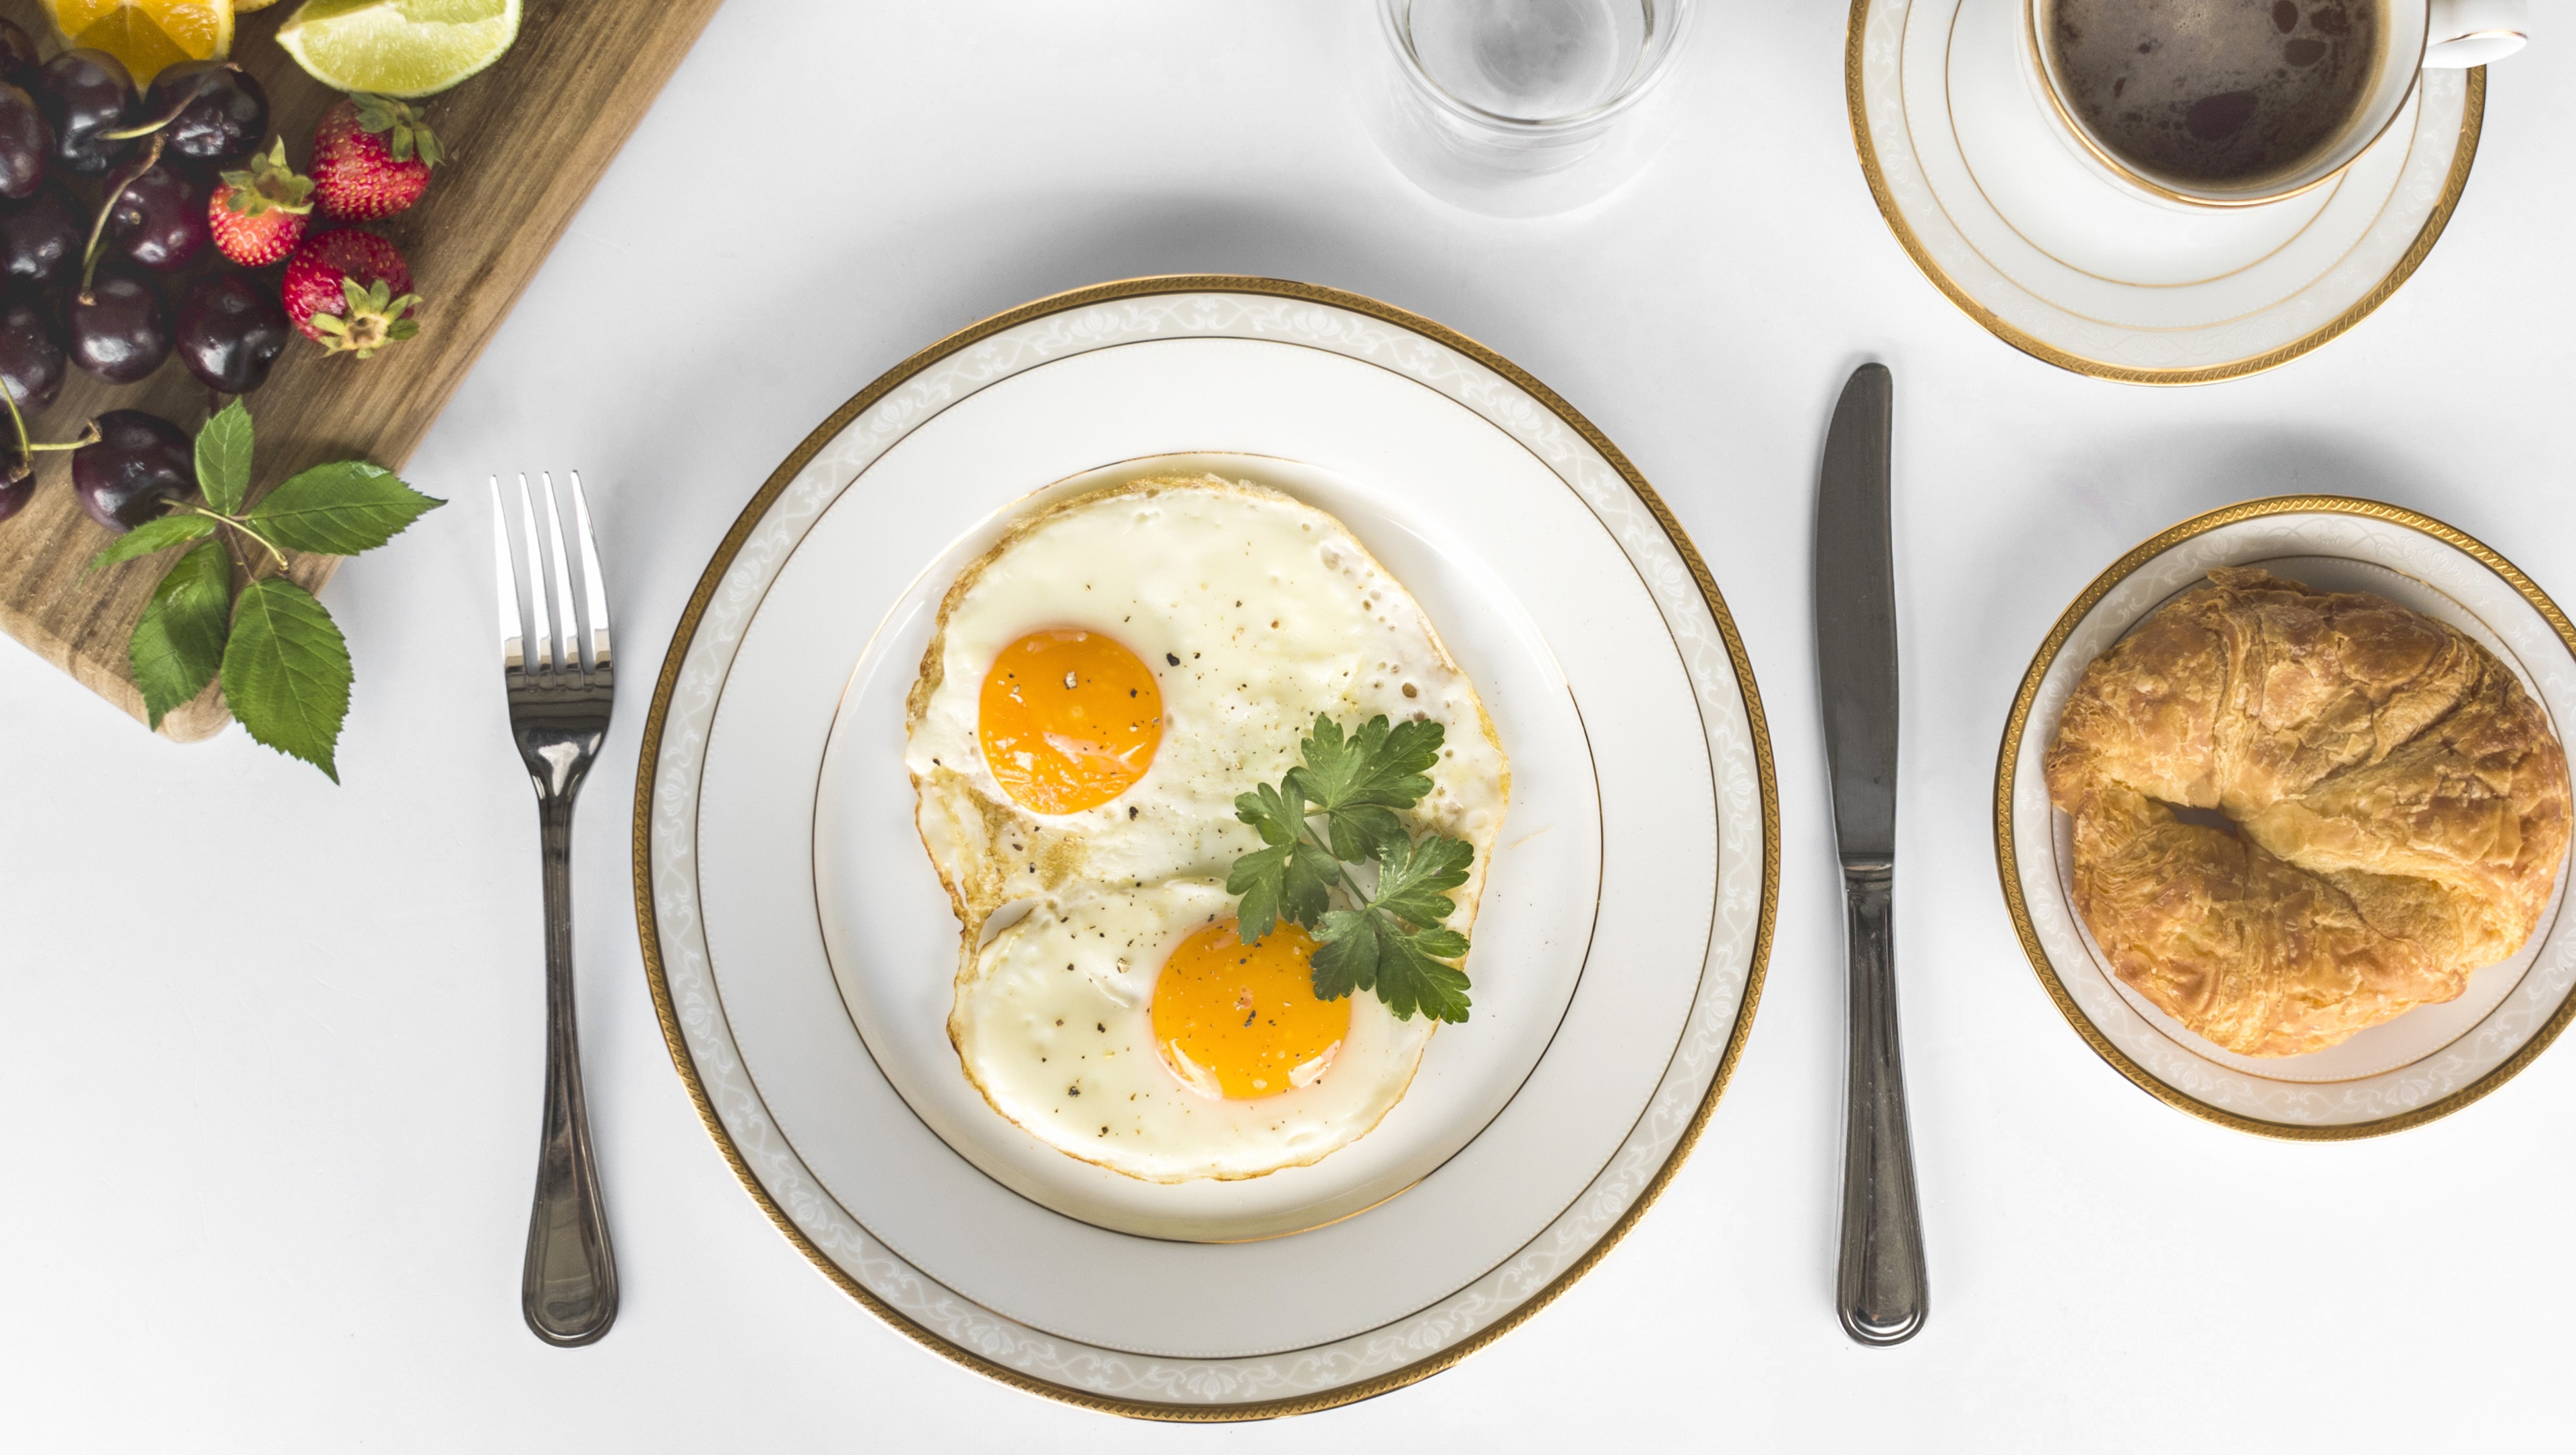 Fried eggs with bread and fruits breakfast on white background